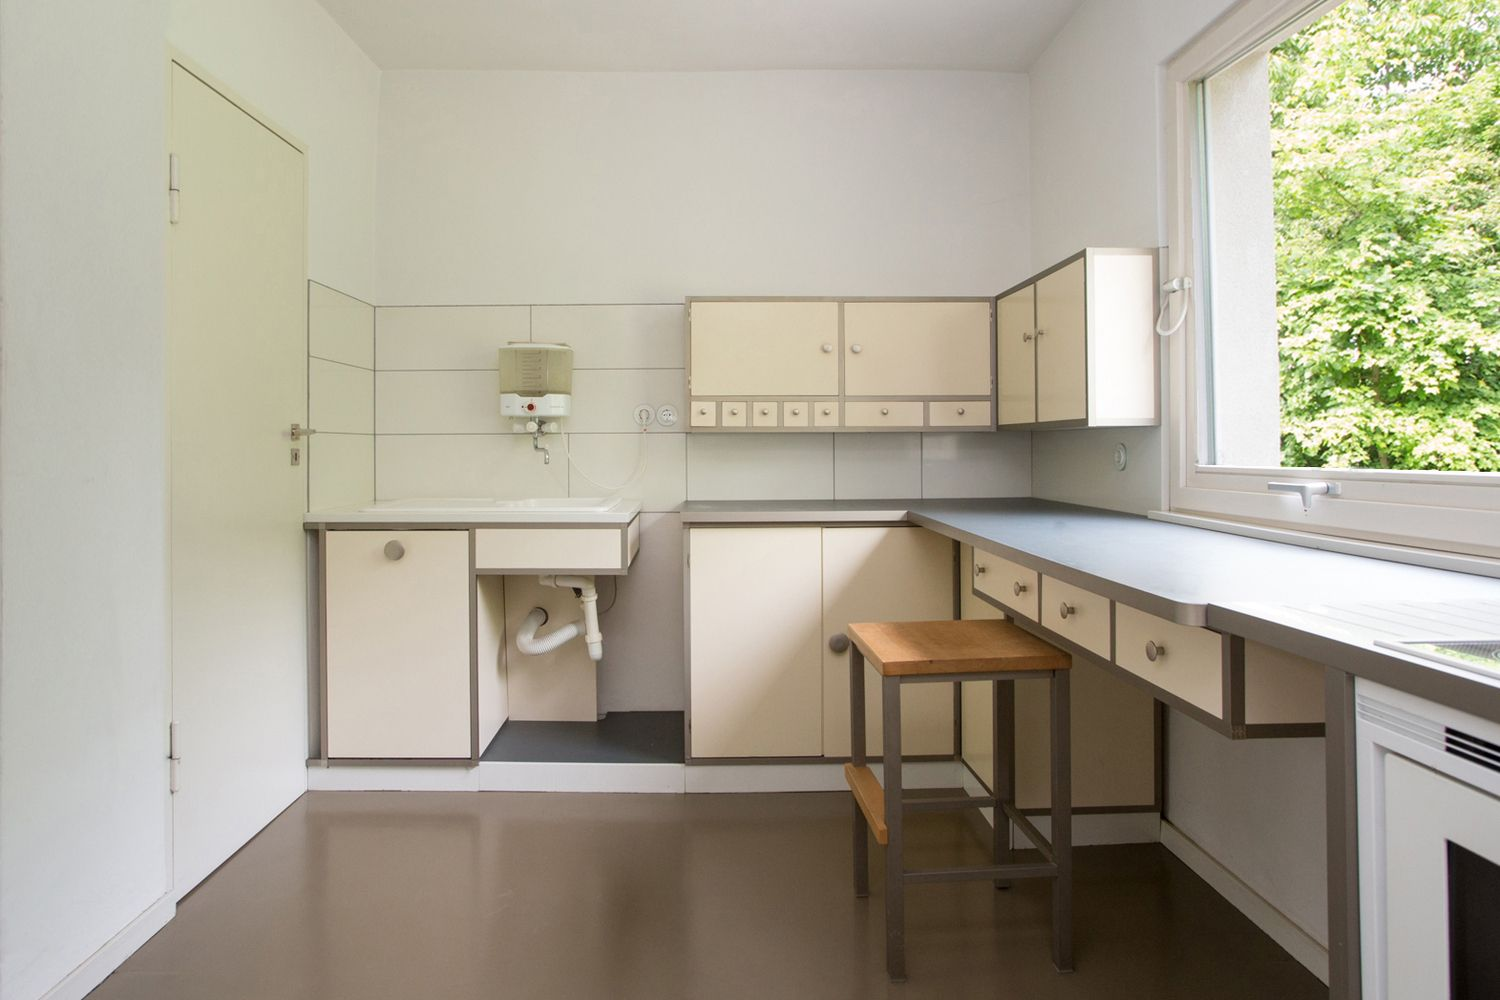 Bauhaus Küchenschrank Ever Wonder Why Today S Kitchens Look The Way They Do In 2019